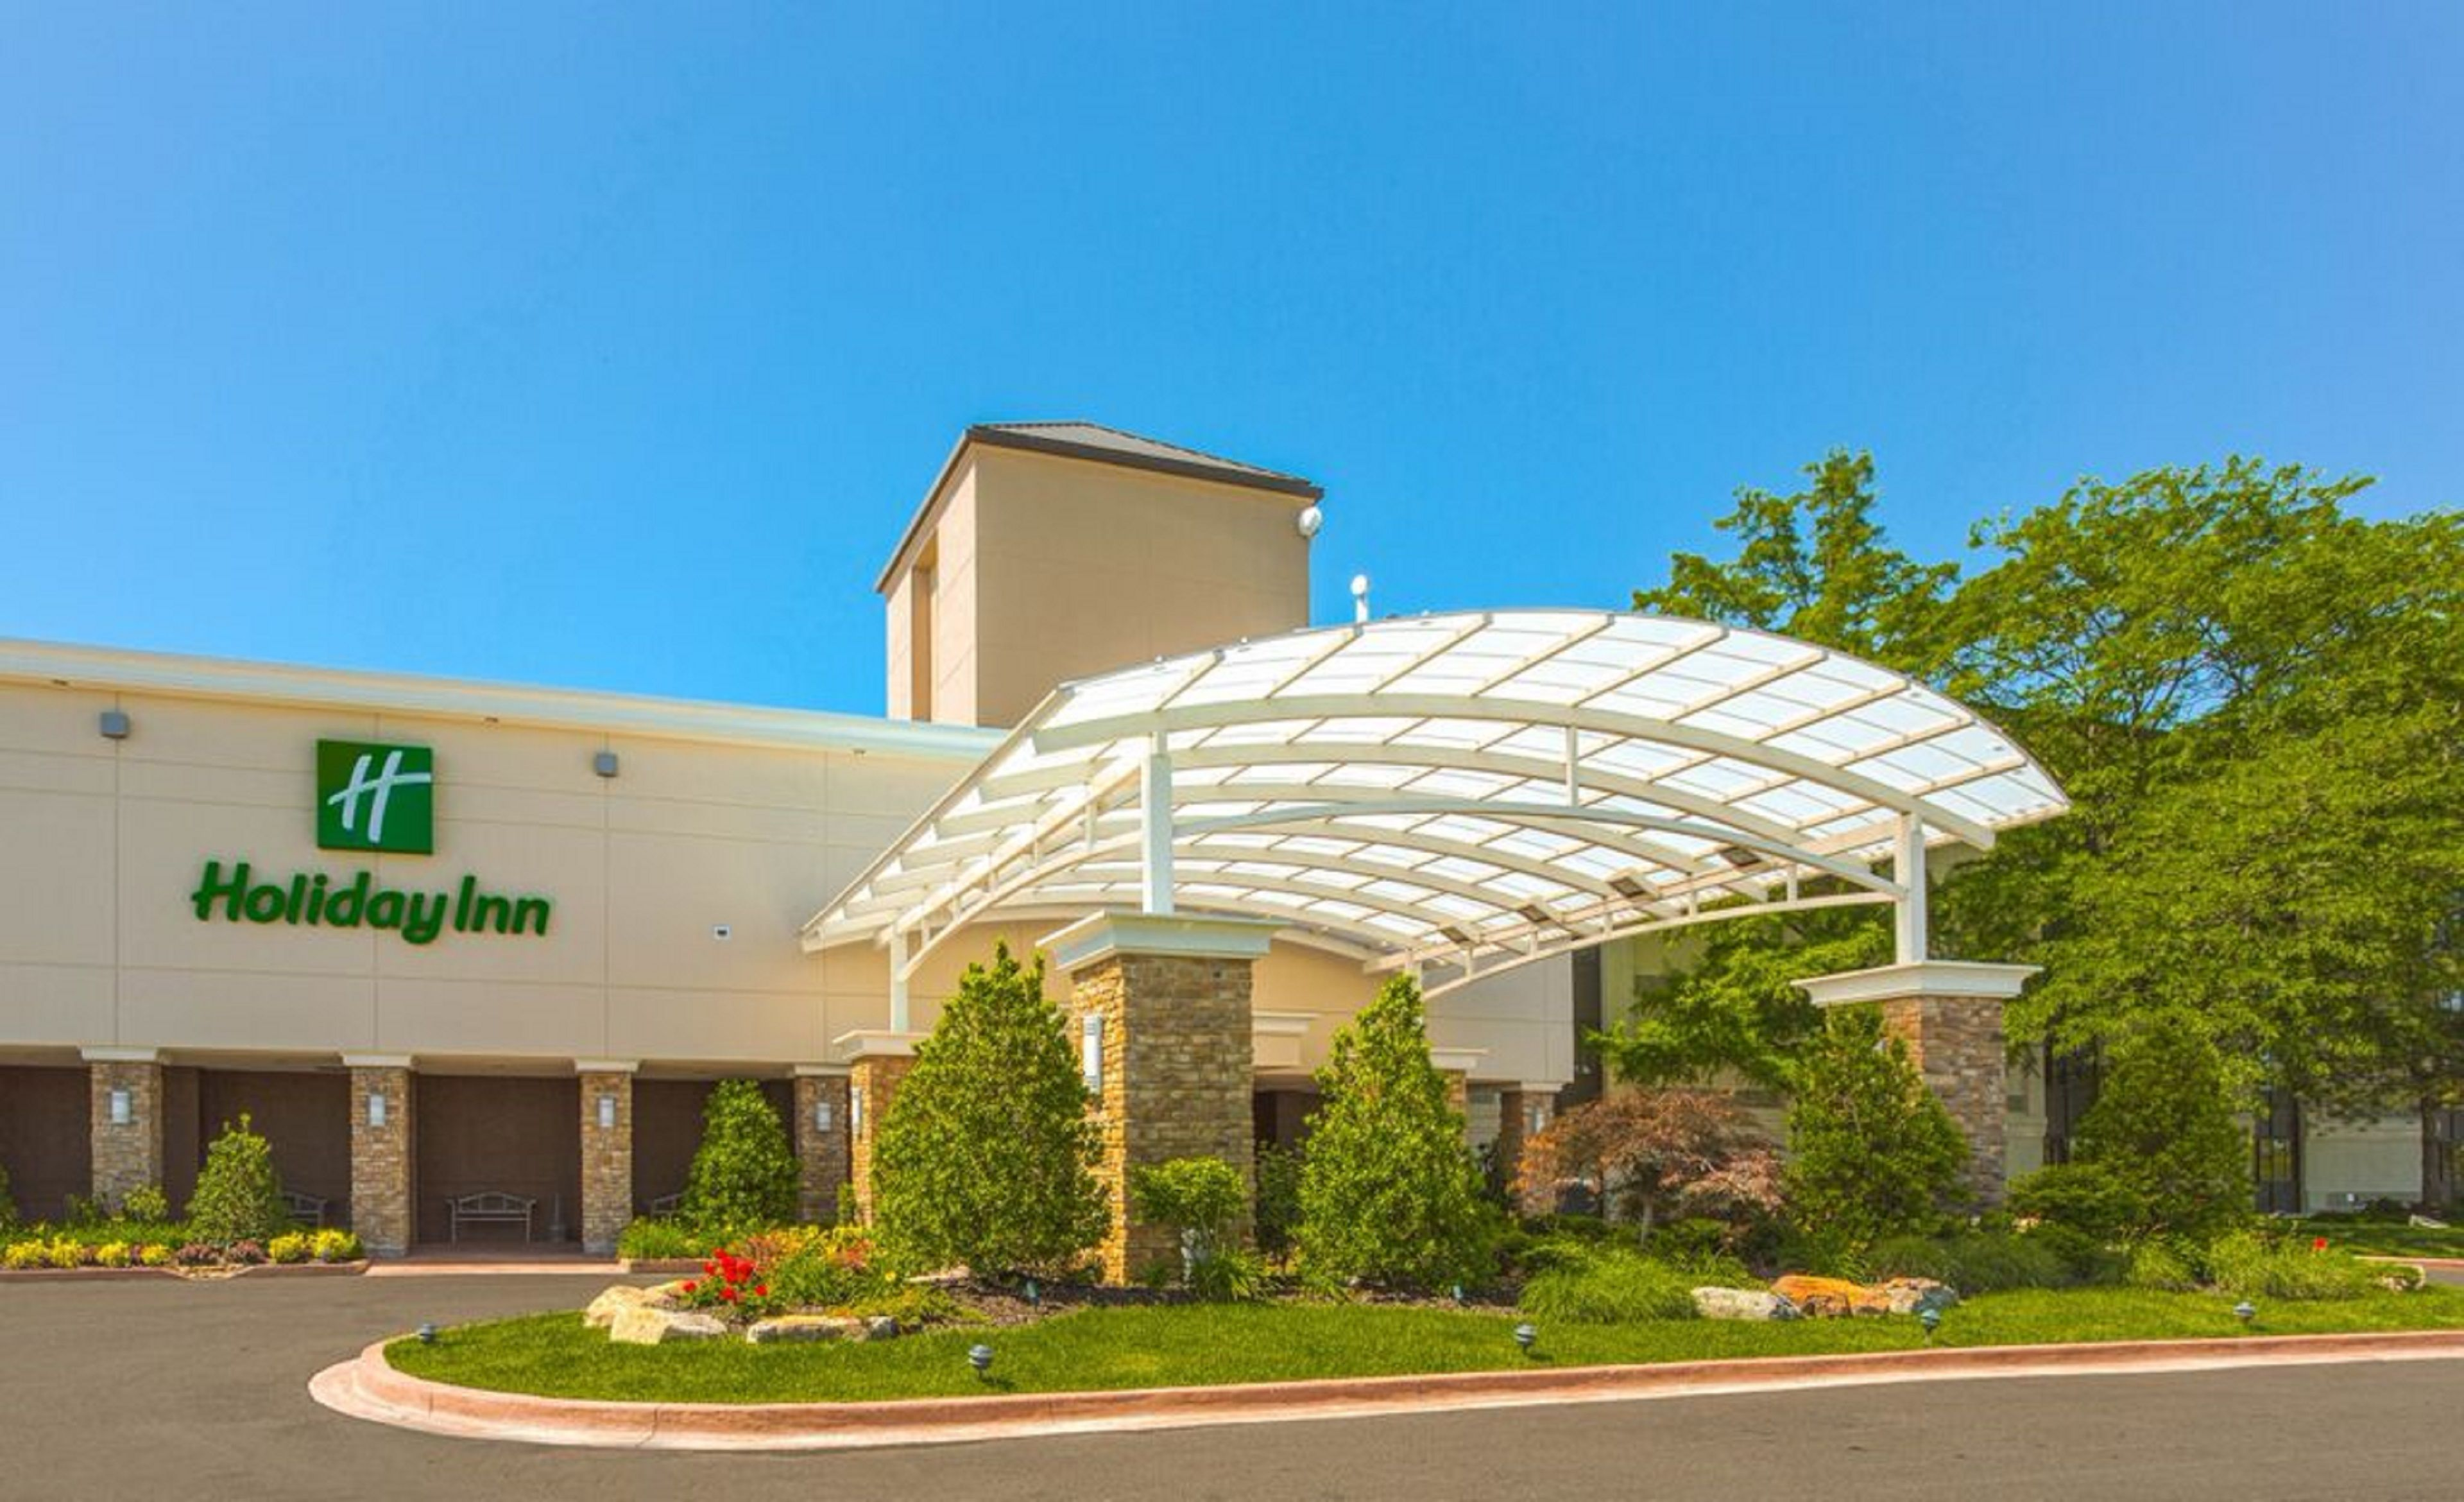 Holiday Inn Eugene  Springfield, Springfield Oregon. Allendale Heating And Cooling. Inventory Control Tools Best Free Crm For Mac. Geico Term Life Insurance Create A Data Base. Life Medical Equipment Enterprise Nas Storage. Web Design Training Courses Flying Pie Pizza. How Can I Reduce The Size Of A Pdf File. Male Hair Loss Treatments Columbia College Sc. Health Care Administrators Association